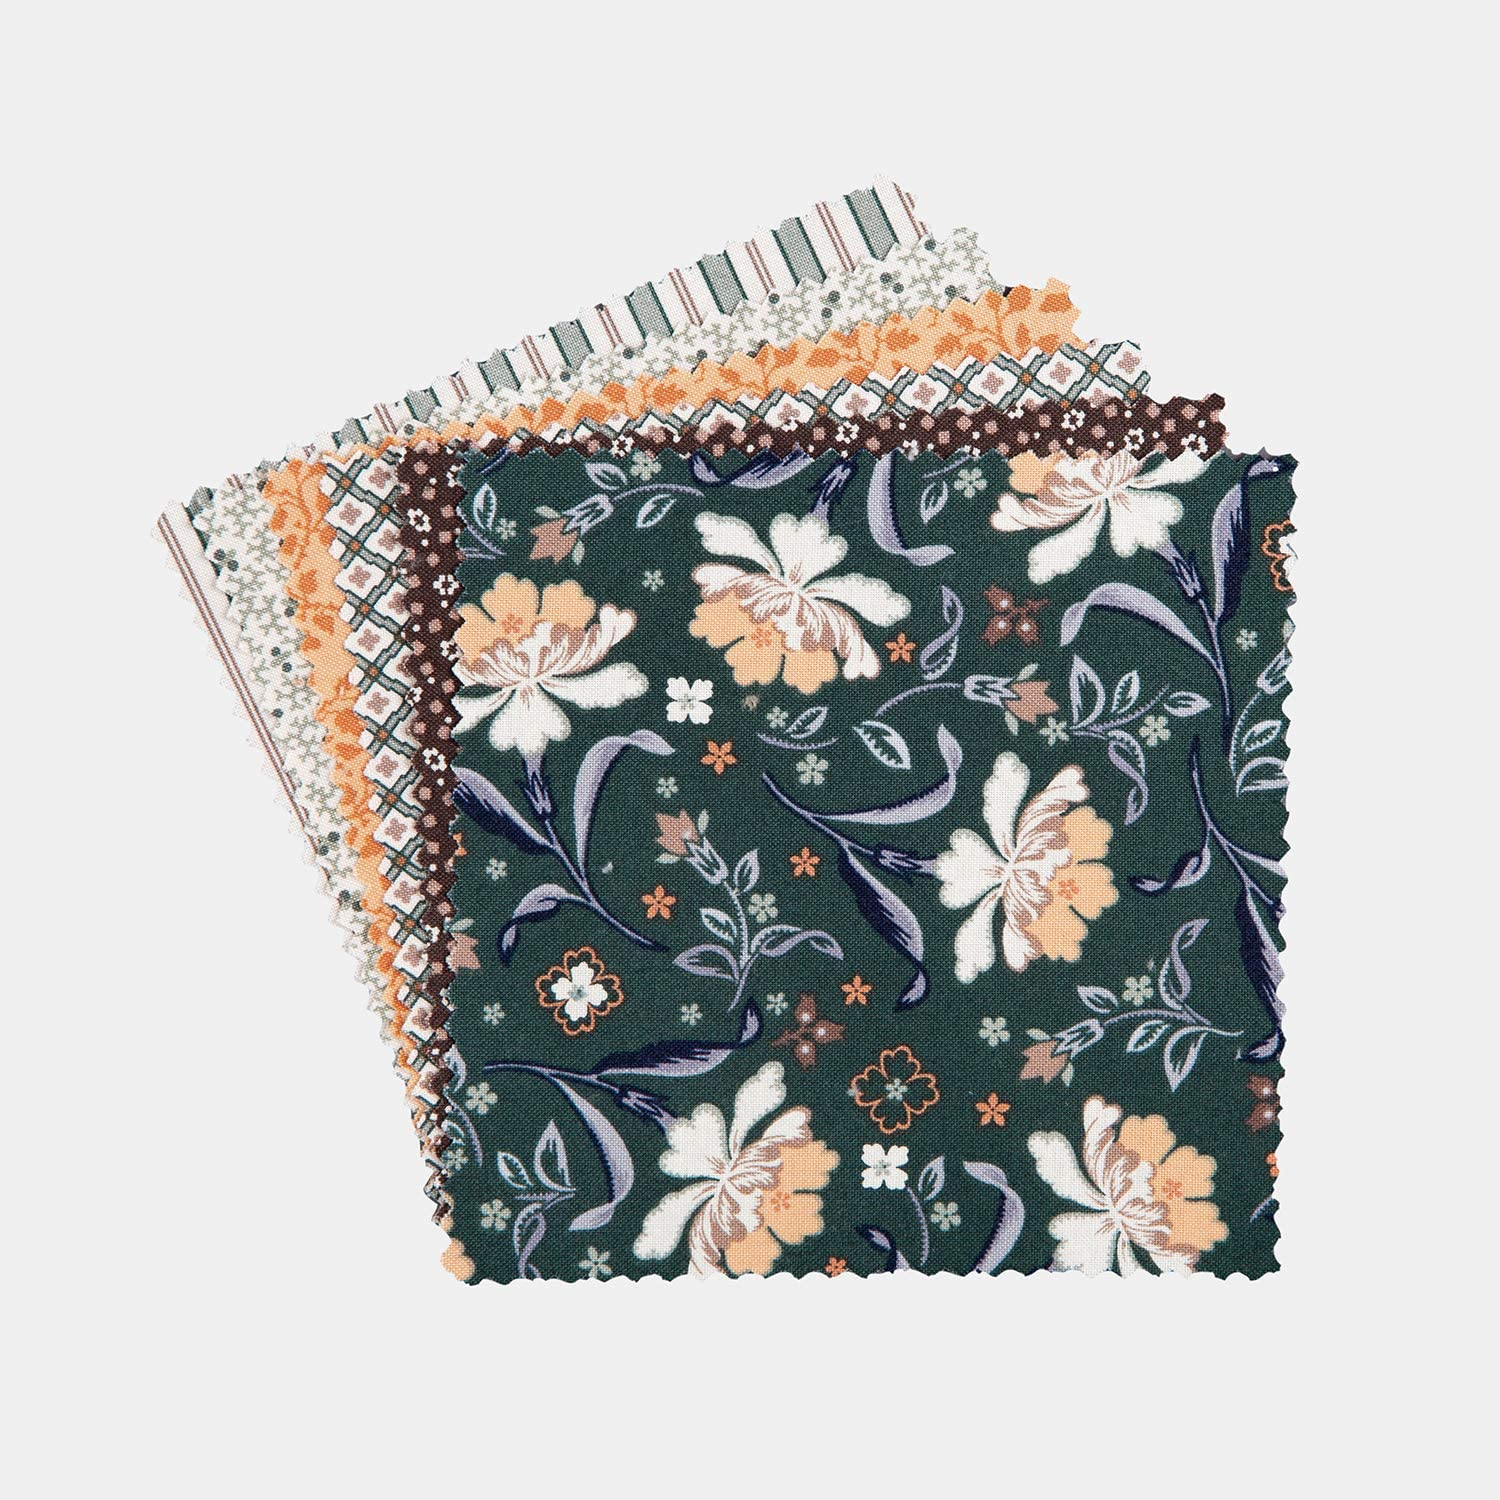 Connecting Threads Print Collection Precut Cotton Quilting Fabric Bundle 5